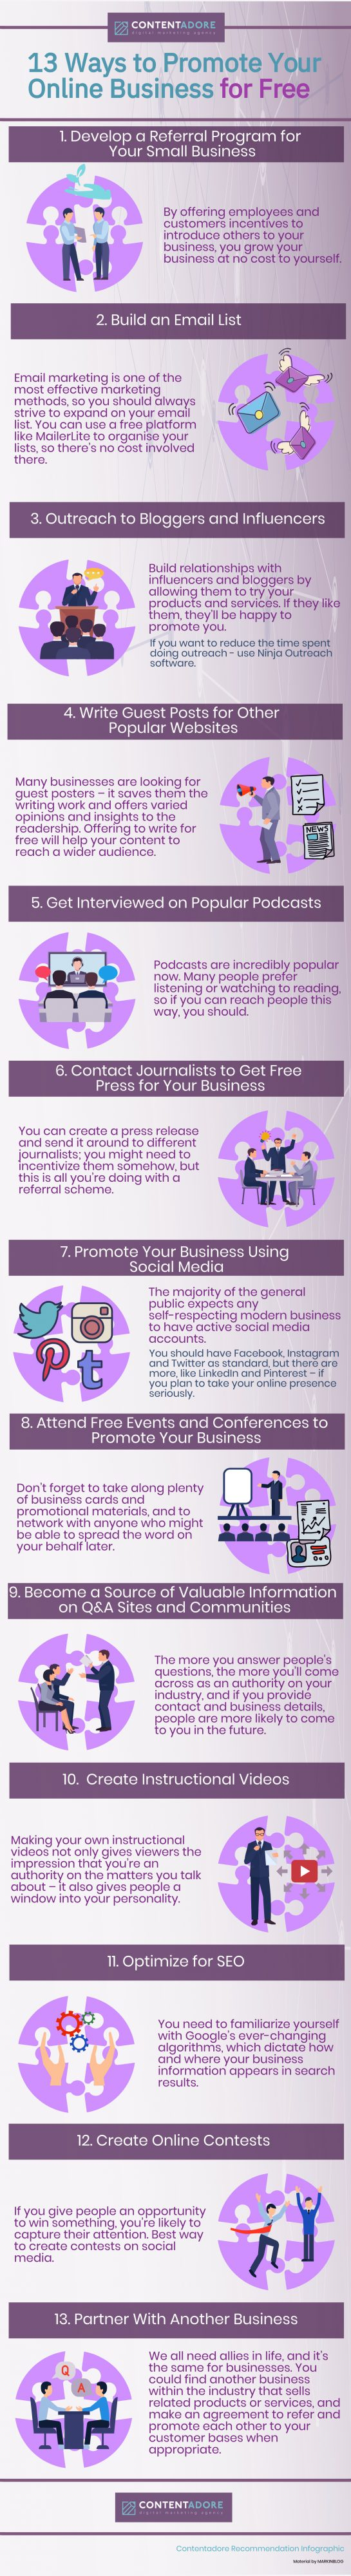 13 ways to promote business for free